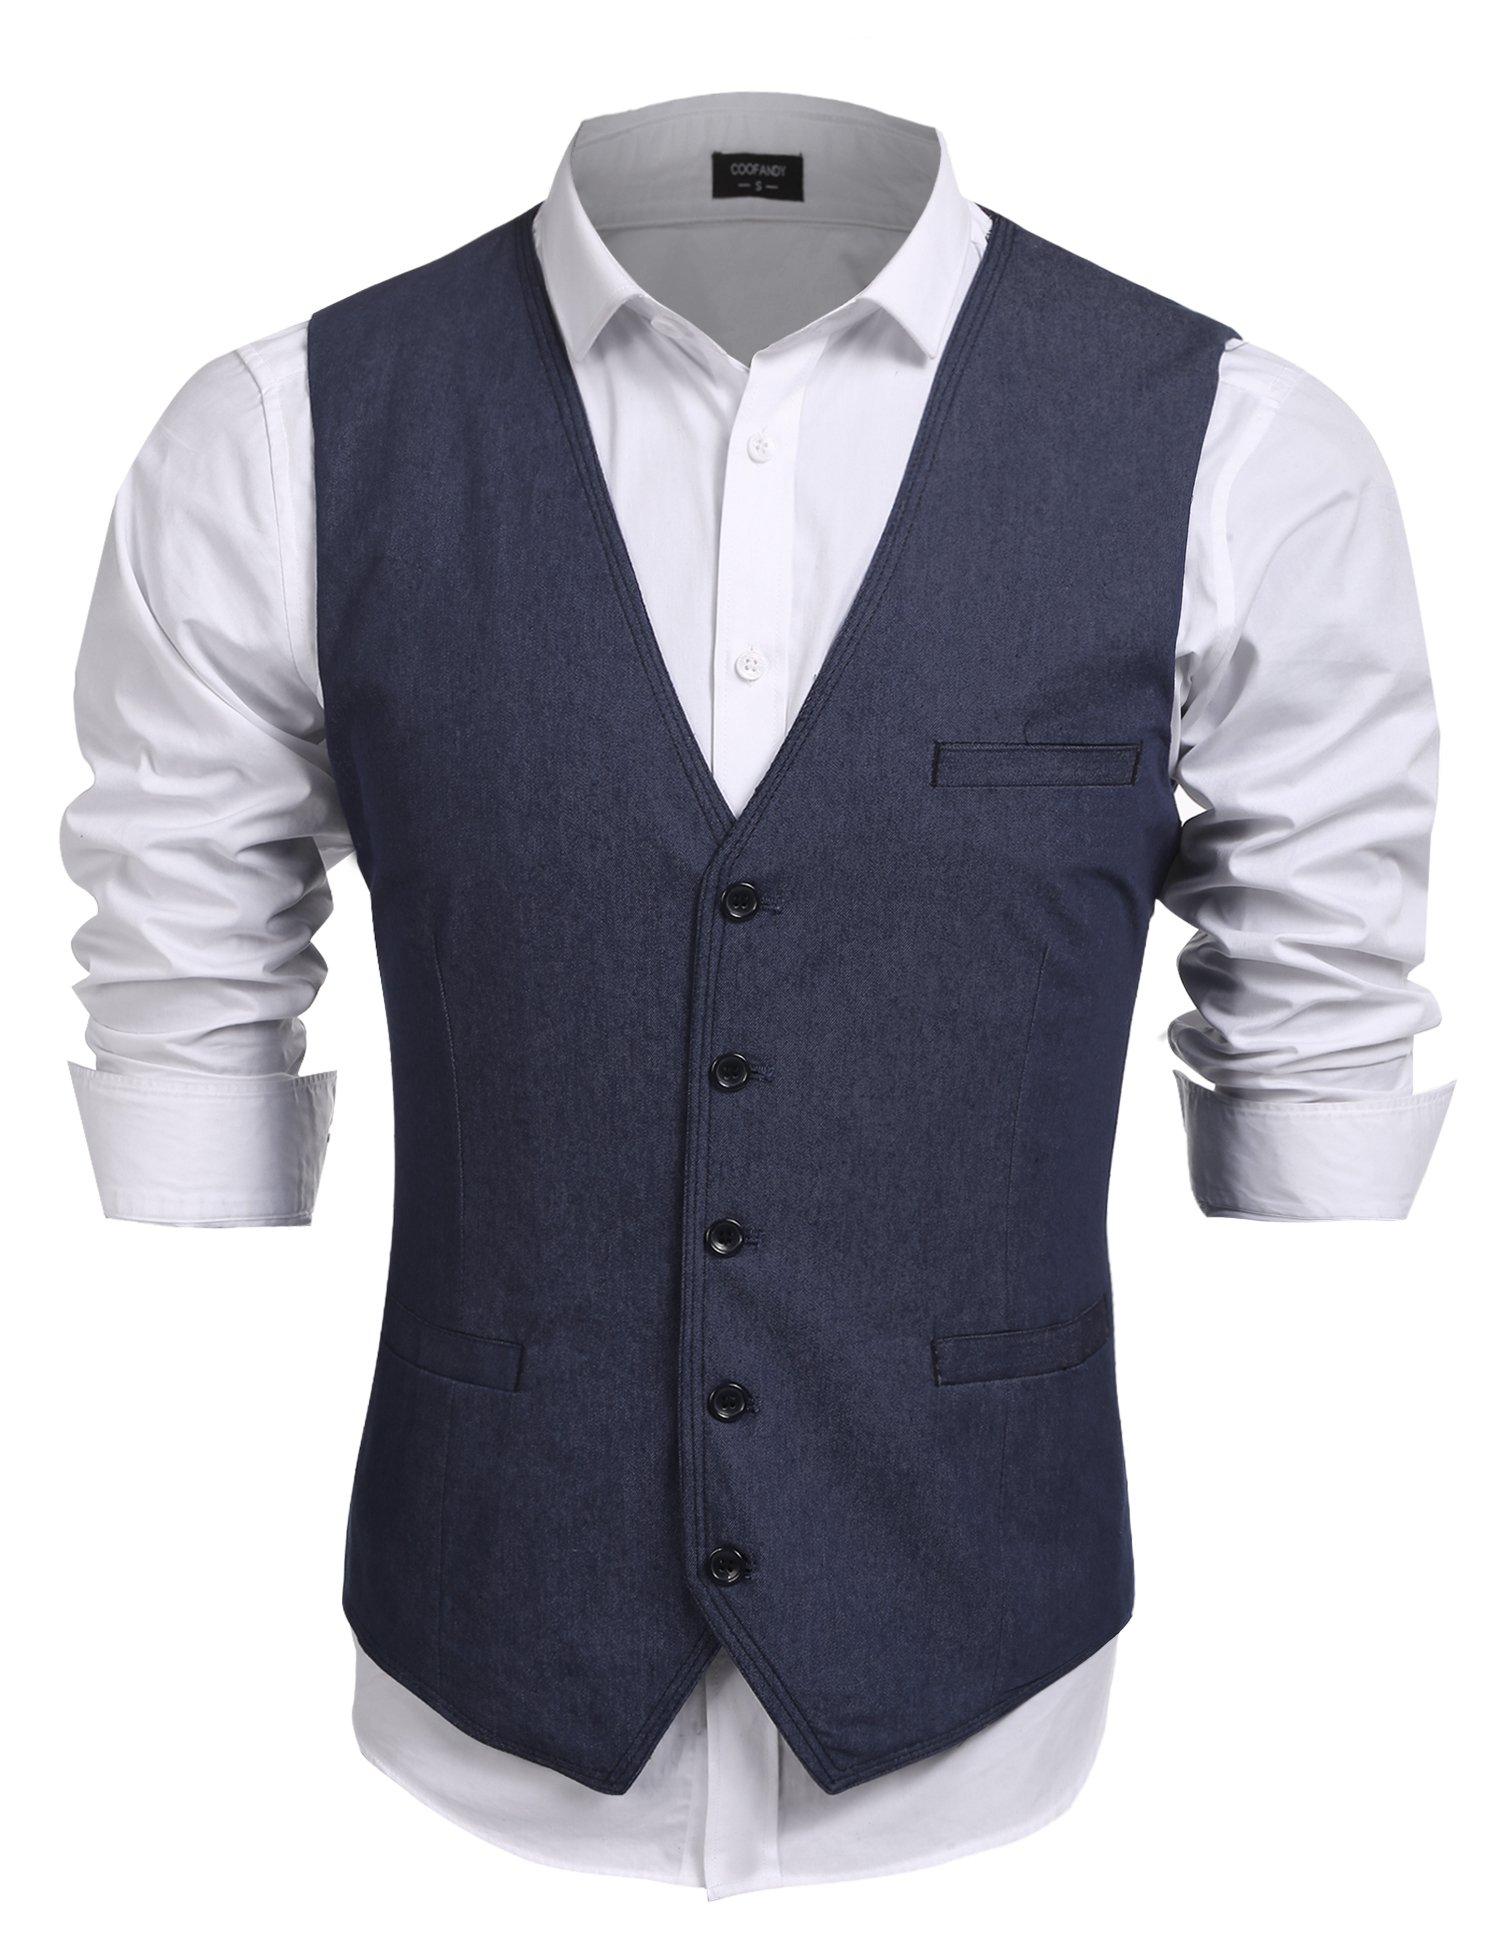 Jinidu Men's Outdoors Waistcoat Vest Casual V-neck Sleeveless Slim Fit Denim Vests